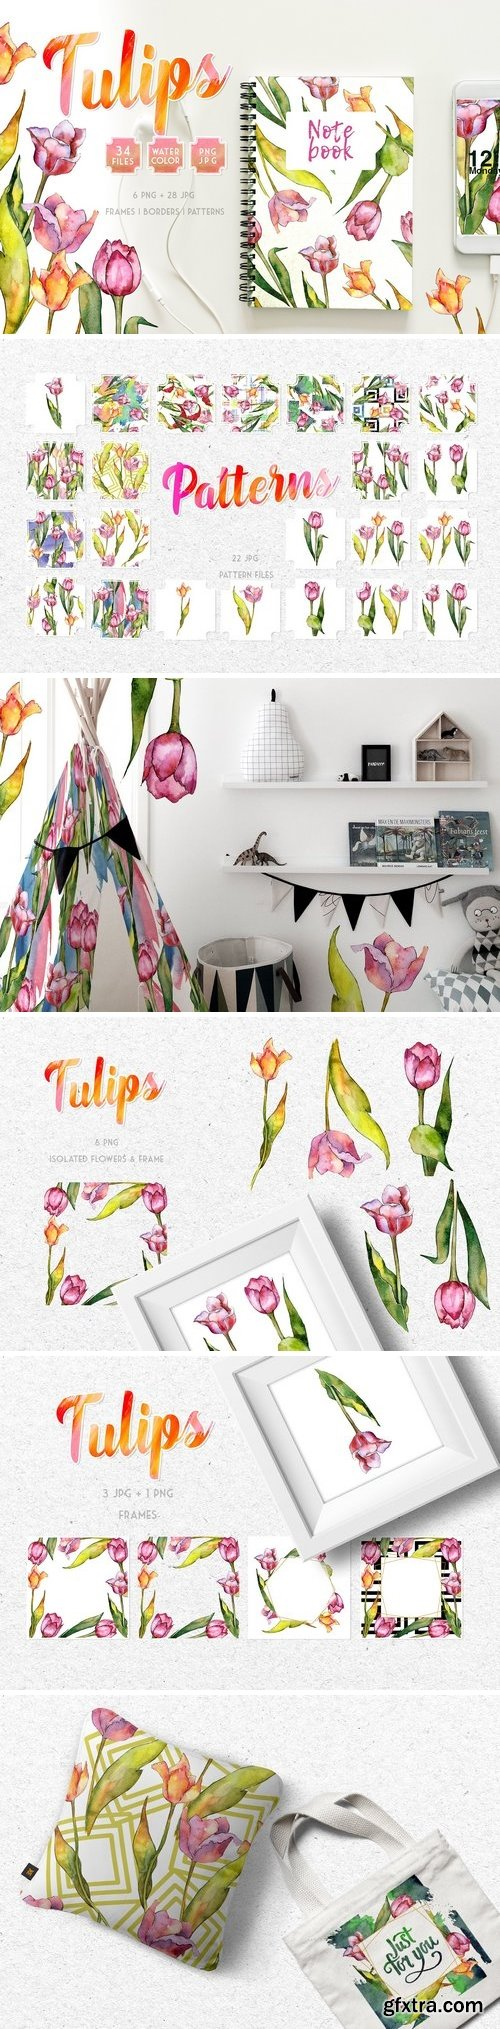 CM - Tulips for Love Watercolor png 3357911